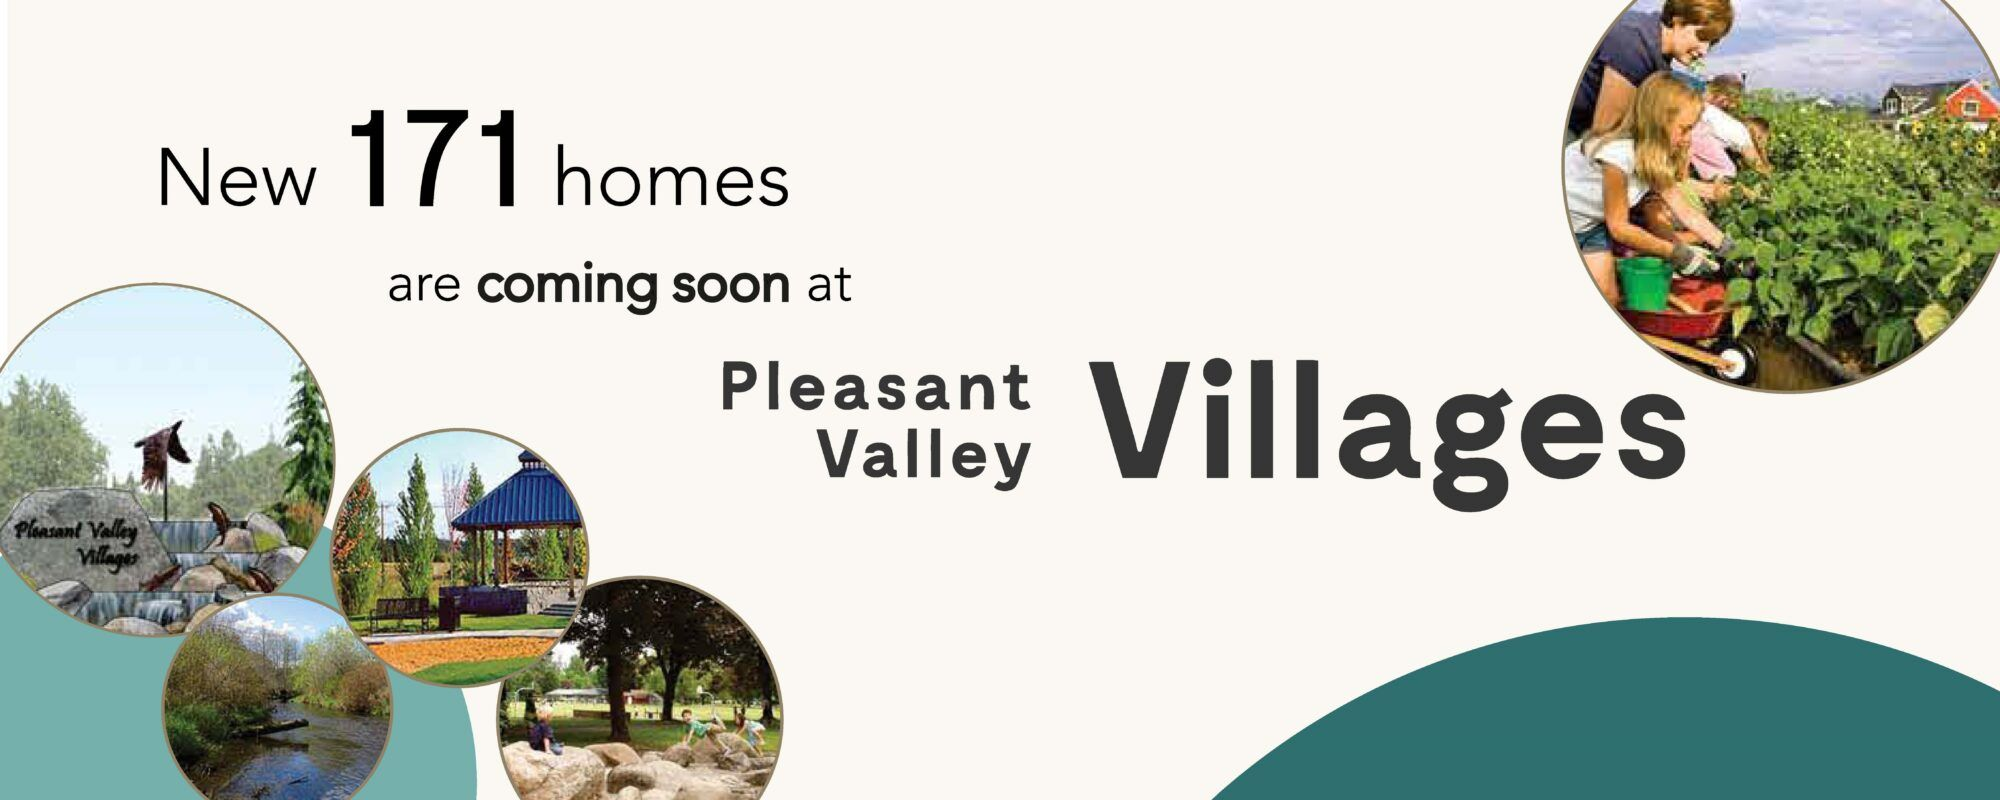 'Pleasant Valley Villages' by Ichijo USA in Portland-Vancouver